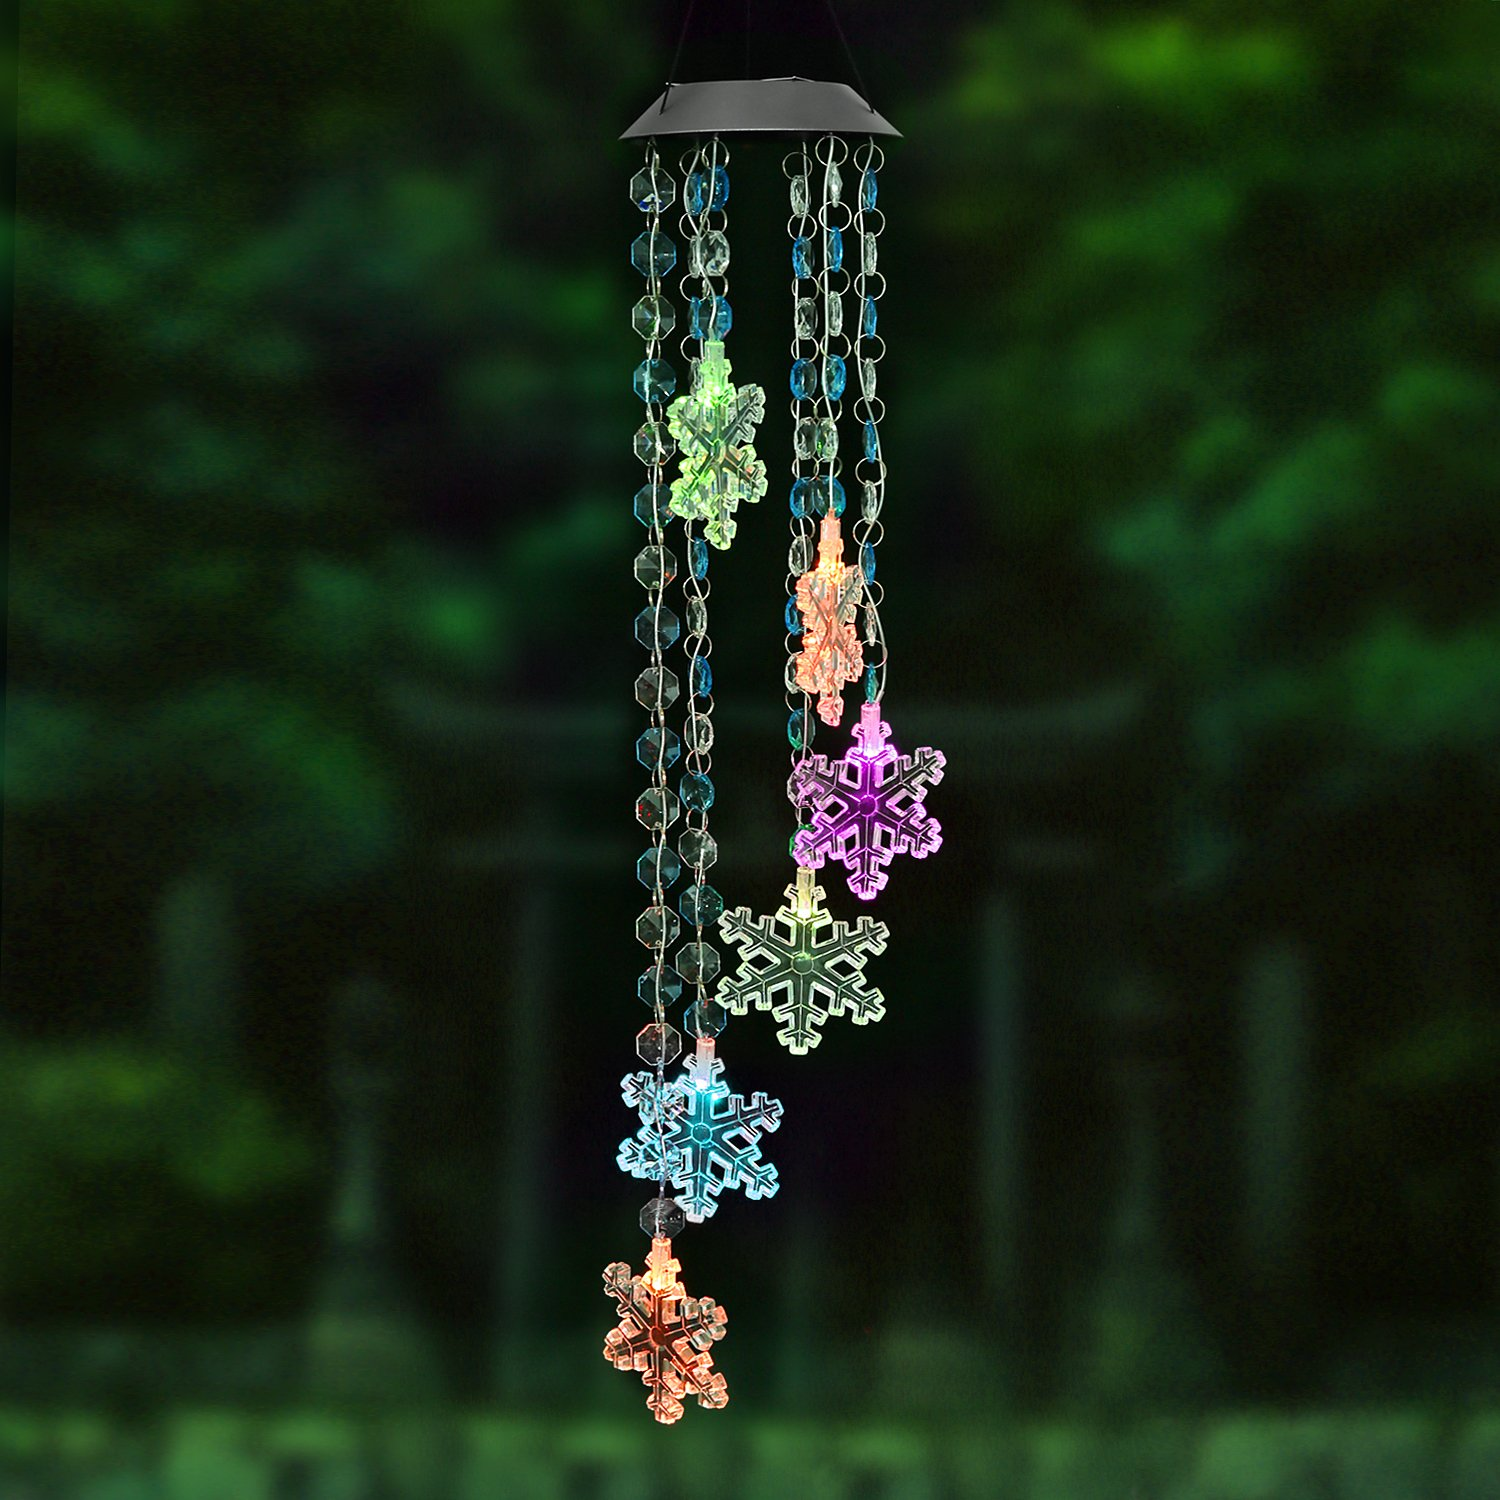 AceList Changing Color Snowflake+Bead Wind Chime, Spiral Spinner Windchime Portable Outdoor Decorative Romantic Windbell Light for Patio, Deck, Yard, Garden, Home, Pathway by AceList (Image #1)